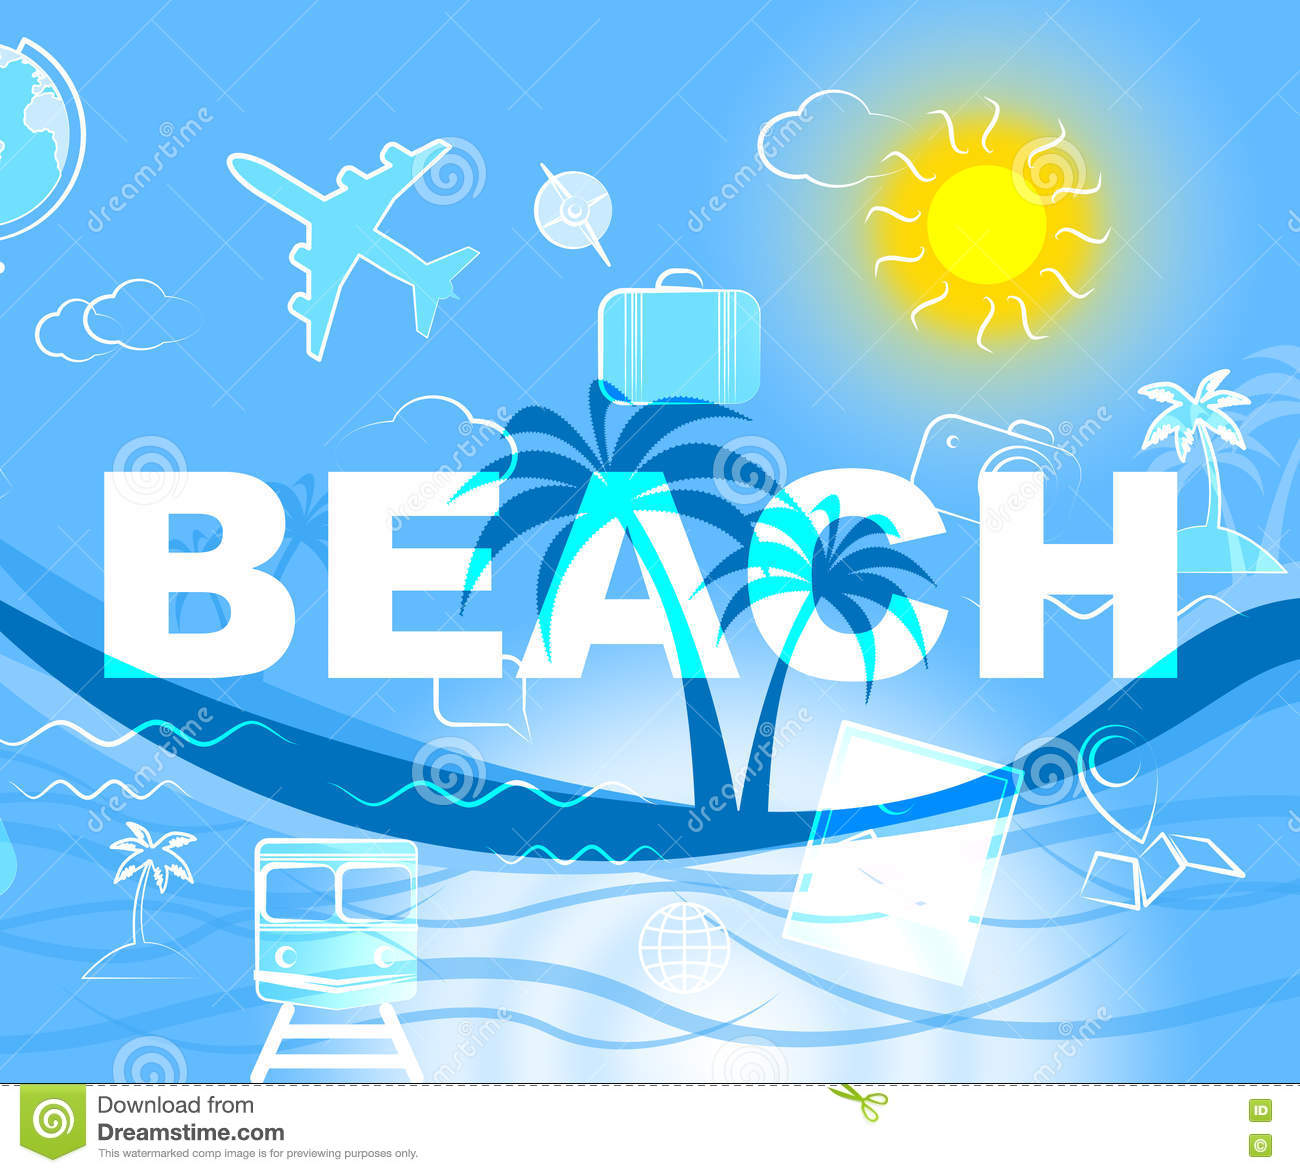 Beach Resort Means Ocean Beaches And Holiday